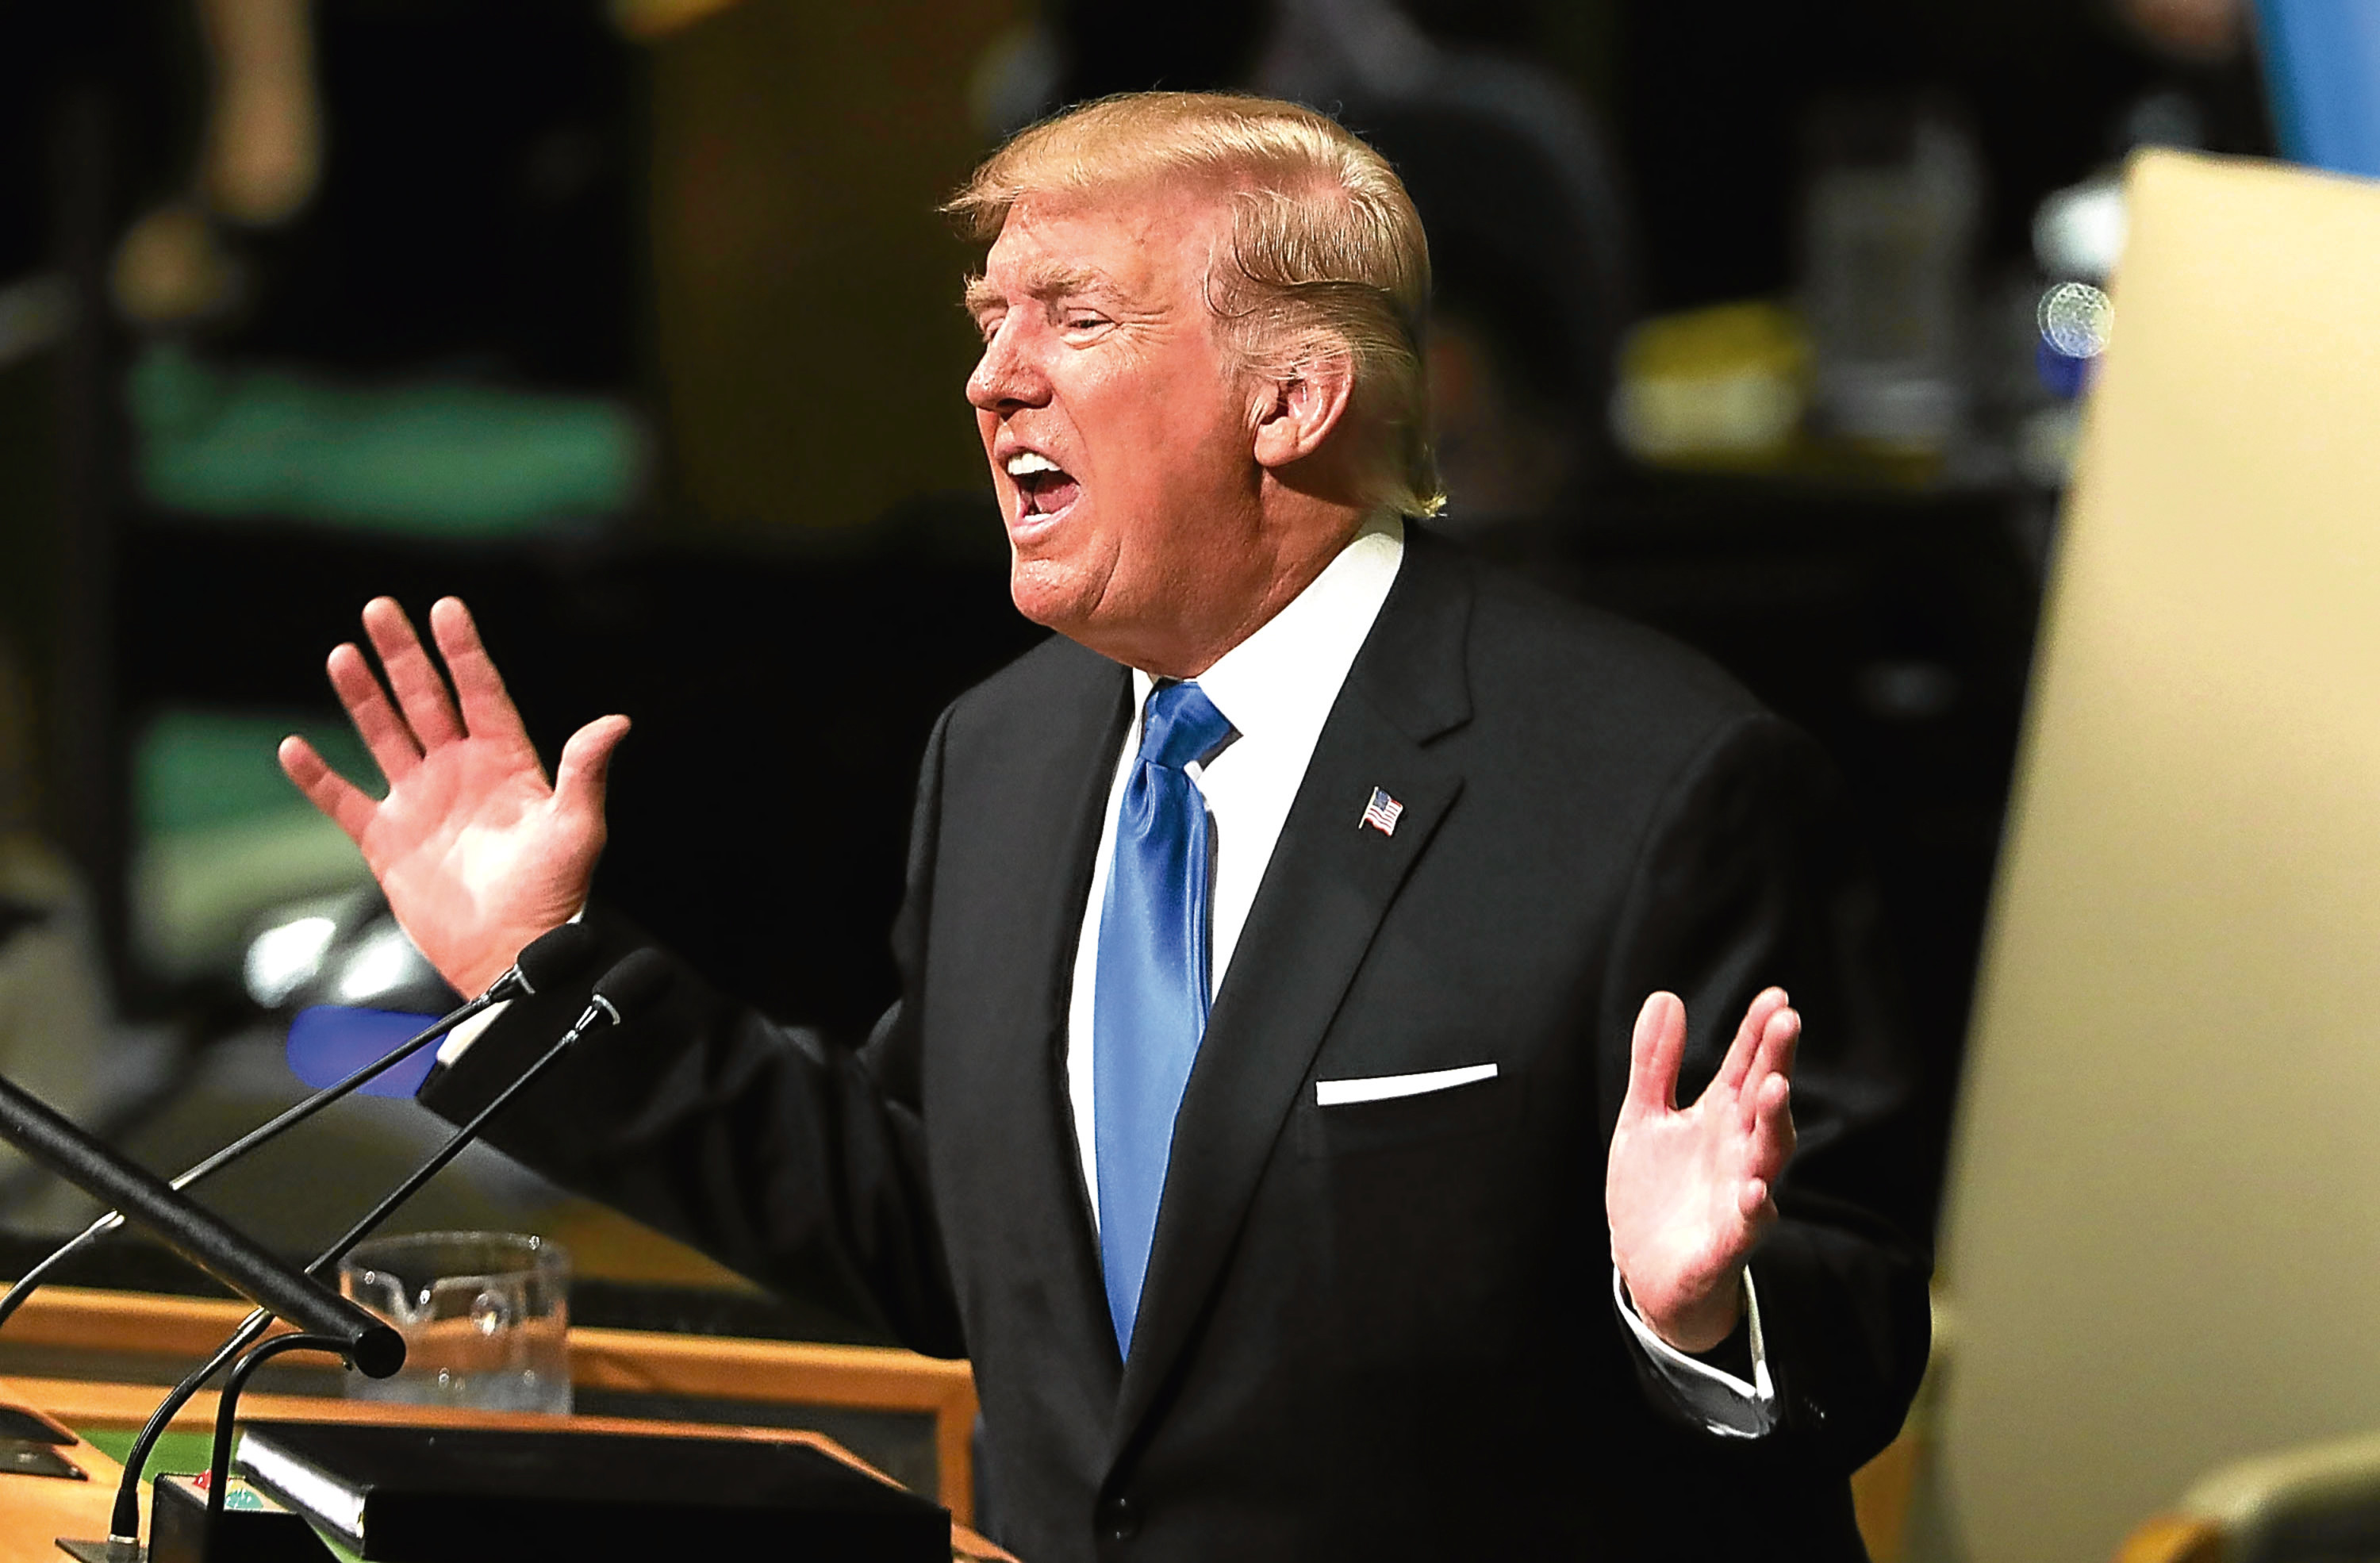 President Donald Trump speaks to world leaders at the 72nd United Nations (UN) General Assembly at UN headquarters in New York.